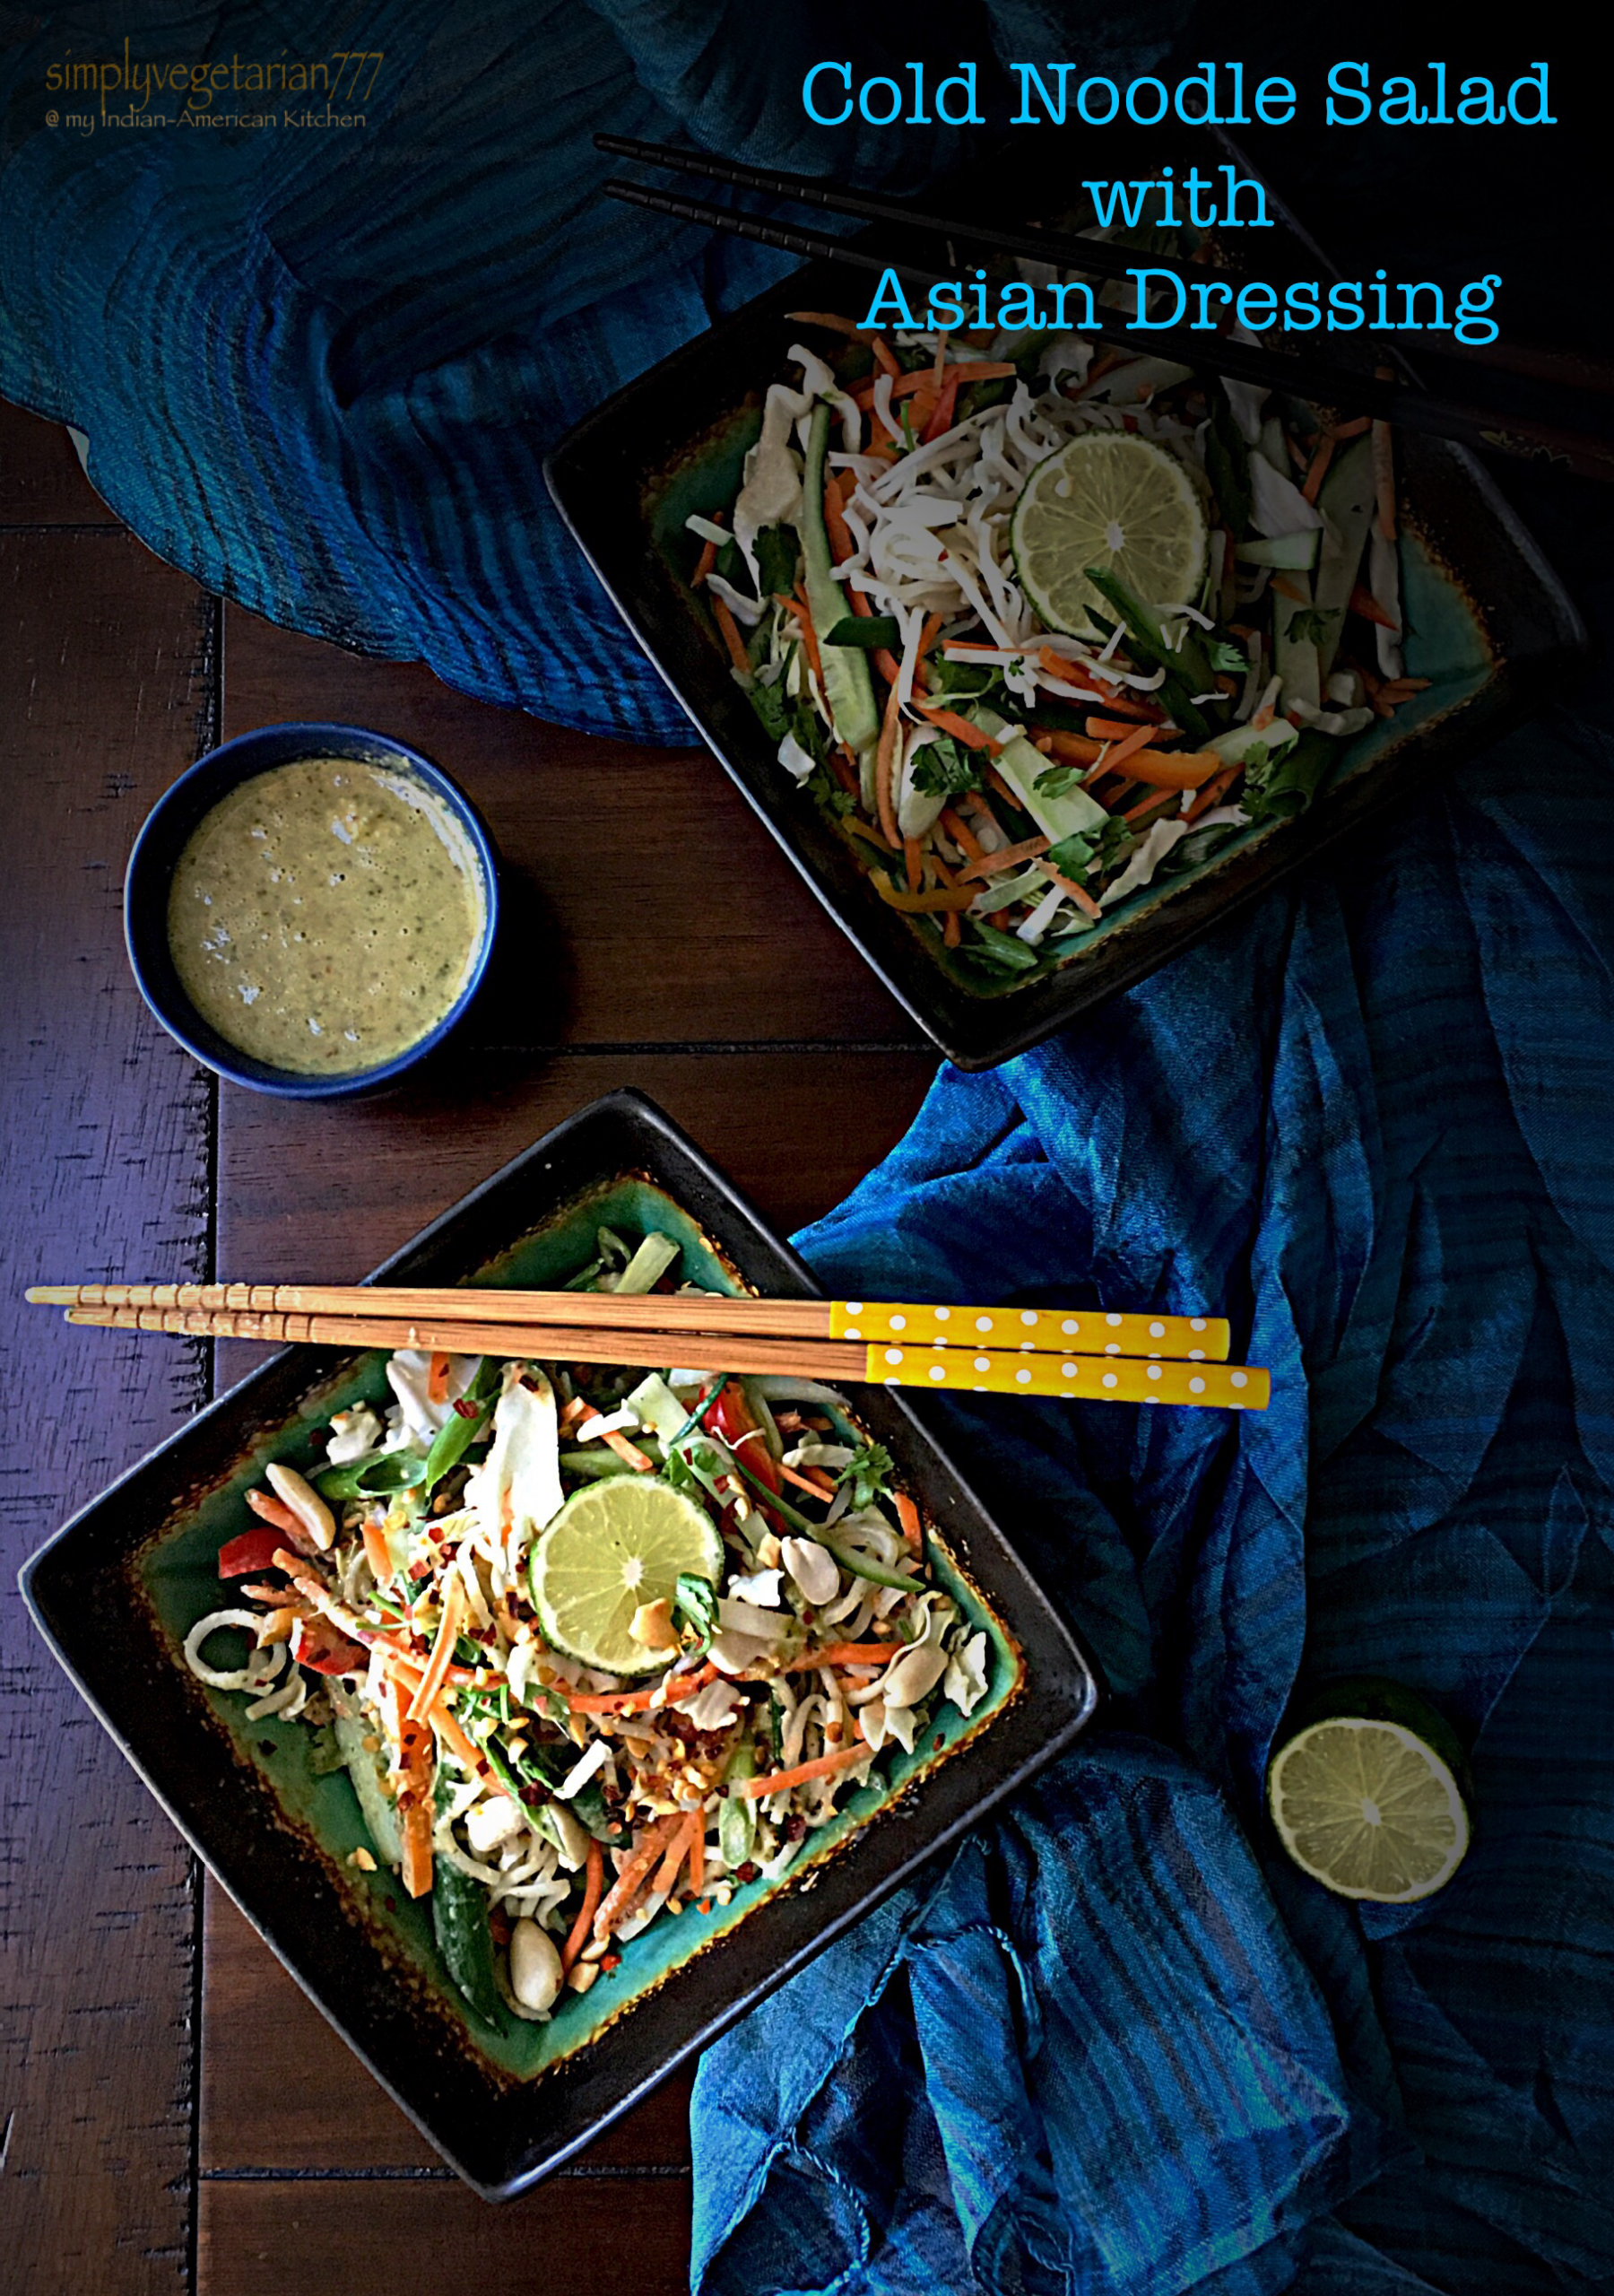 Cold Noodle Salad with Asian Dressing - Meatless Monday